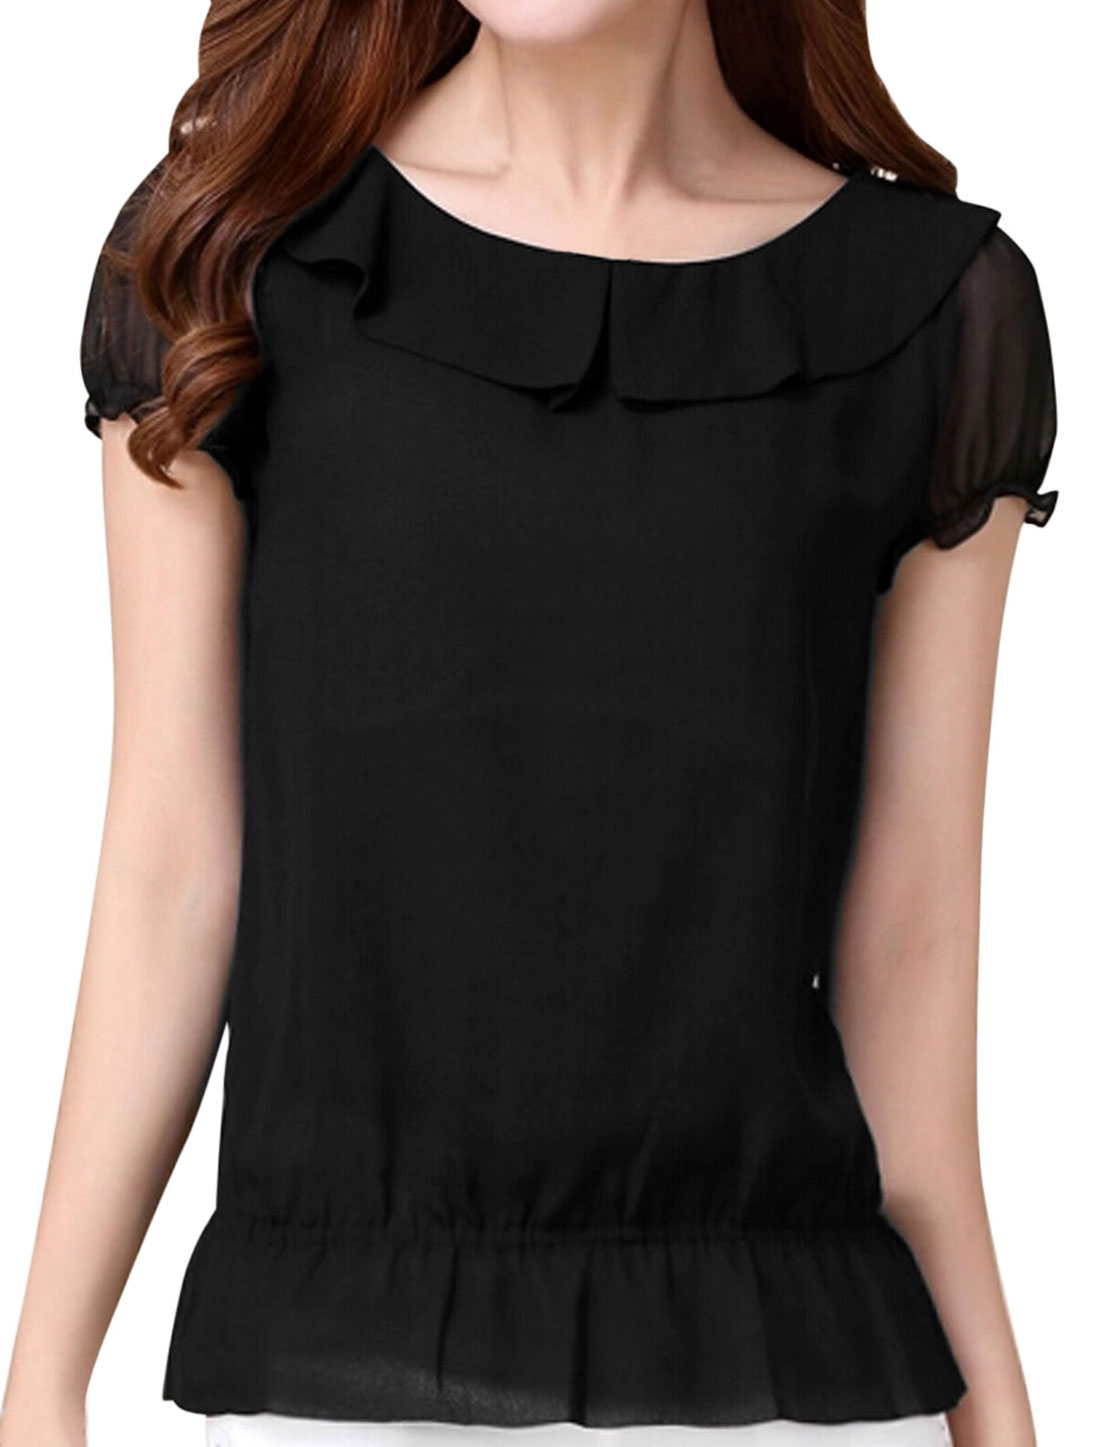 Lady Peter Pan Collar Elastic Waist Casual Chiffon Top Black S